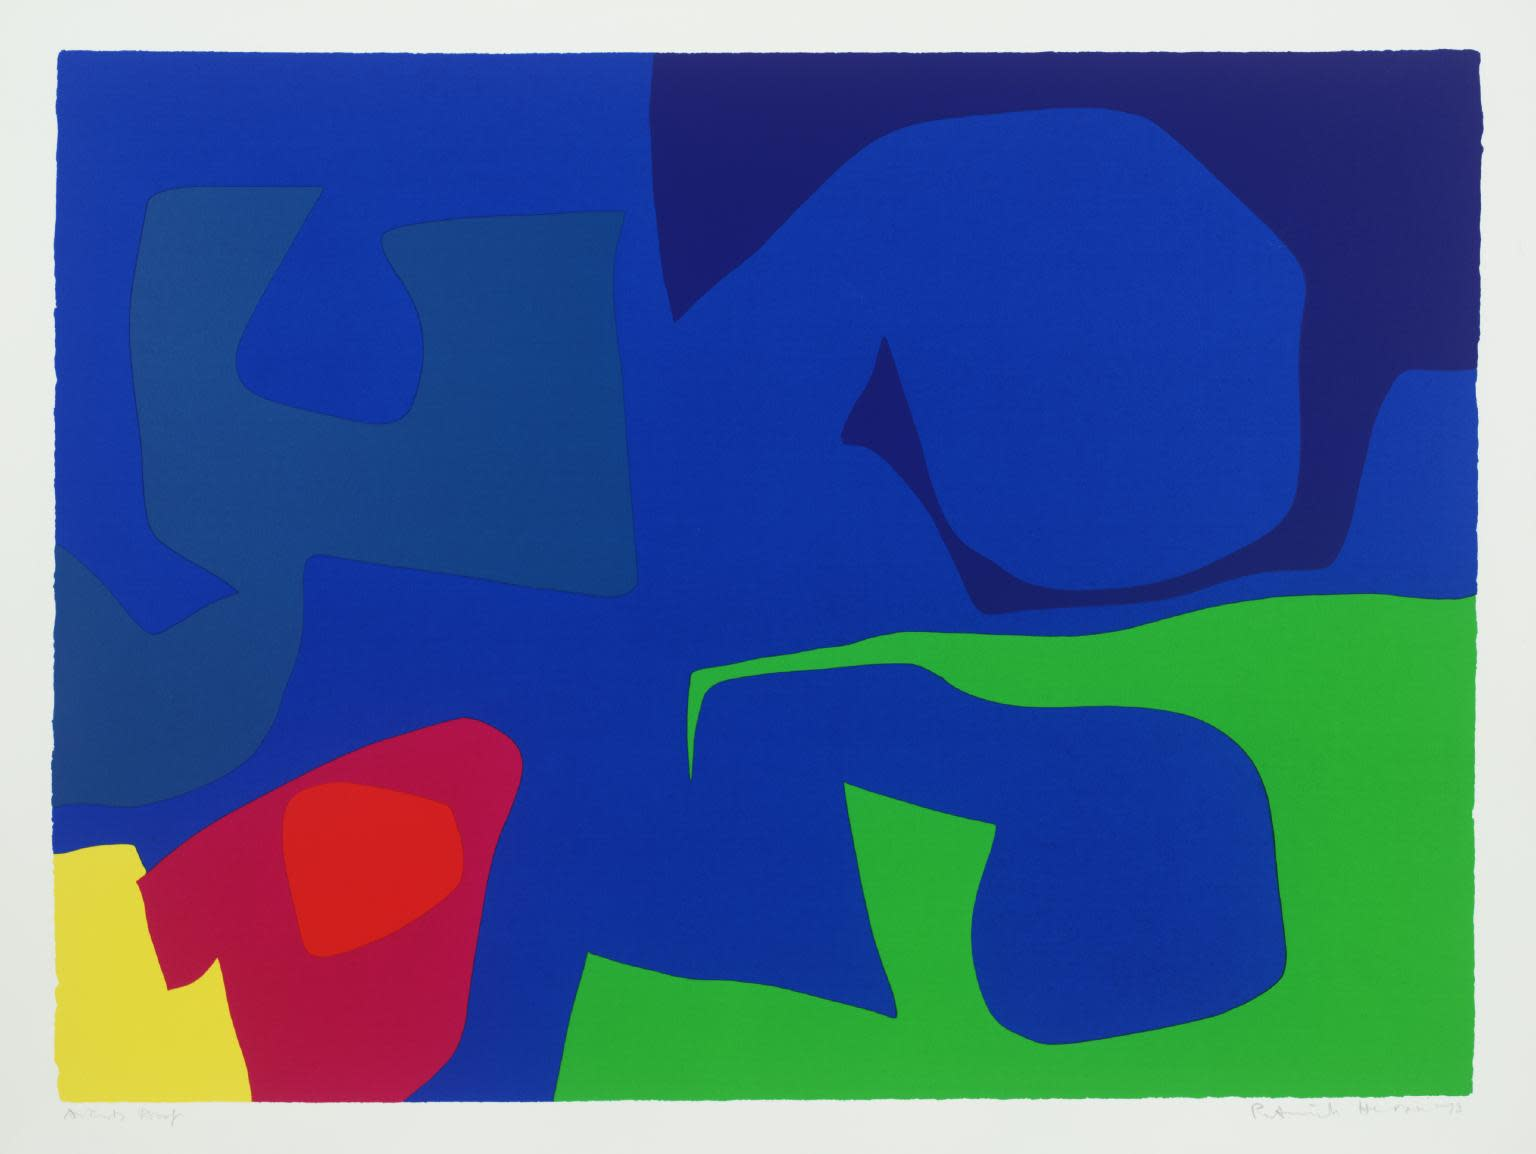 "<span class=""link fancybox-details-link""><a href=""/artists/74-patrick-heron/works/1012/"">View Detail Page</a></span><div class=""artist""><strong>Patrick Heron</strong></div> 1920 - 1999 <div class=""title""><em>January 1973: 19</em>, 1973</div> <div class=""signed_and_dated"">signed and dated in pencil, verso is the publishers stamp<br /> from the edition of 72</div> <div class=""medium"">screenprint</div> <div class=""dimensions"">58.6 x 81.4cm</div>"